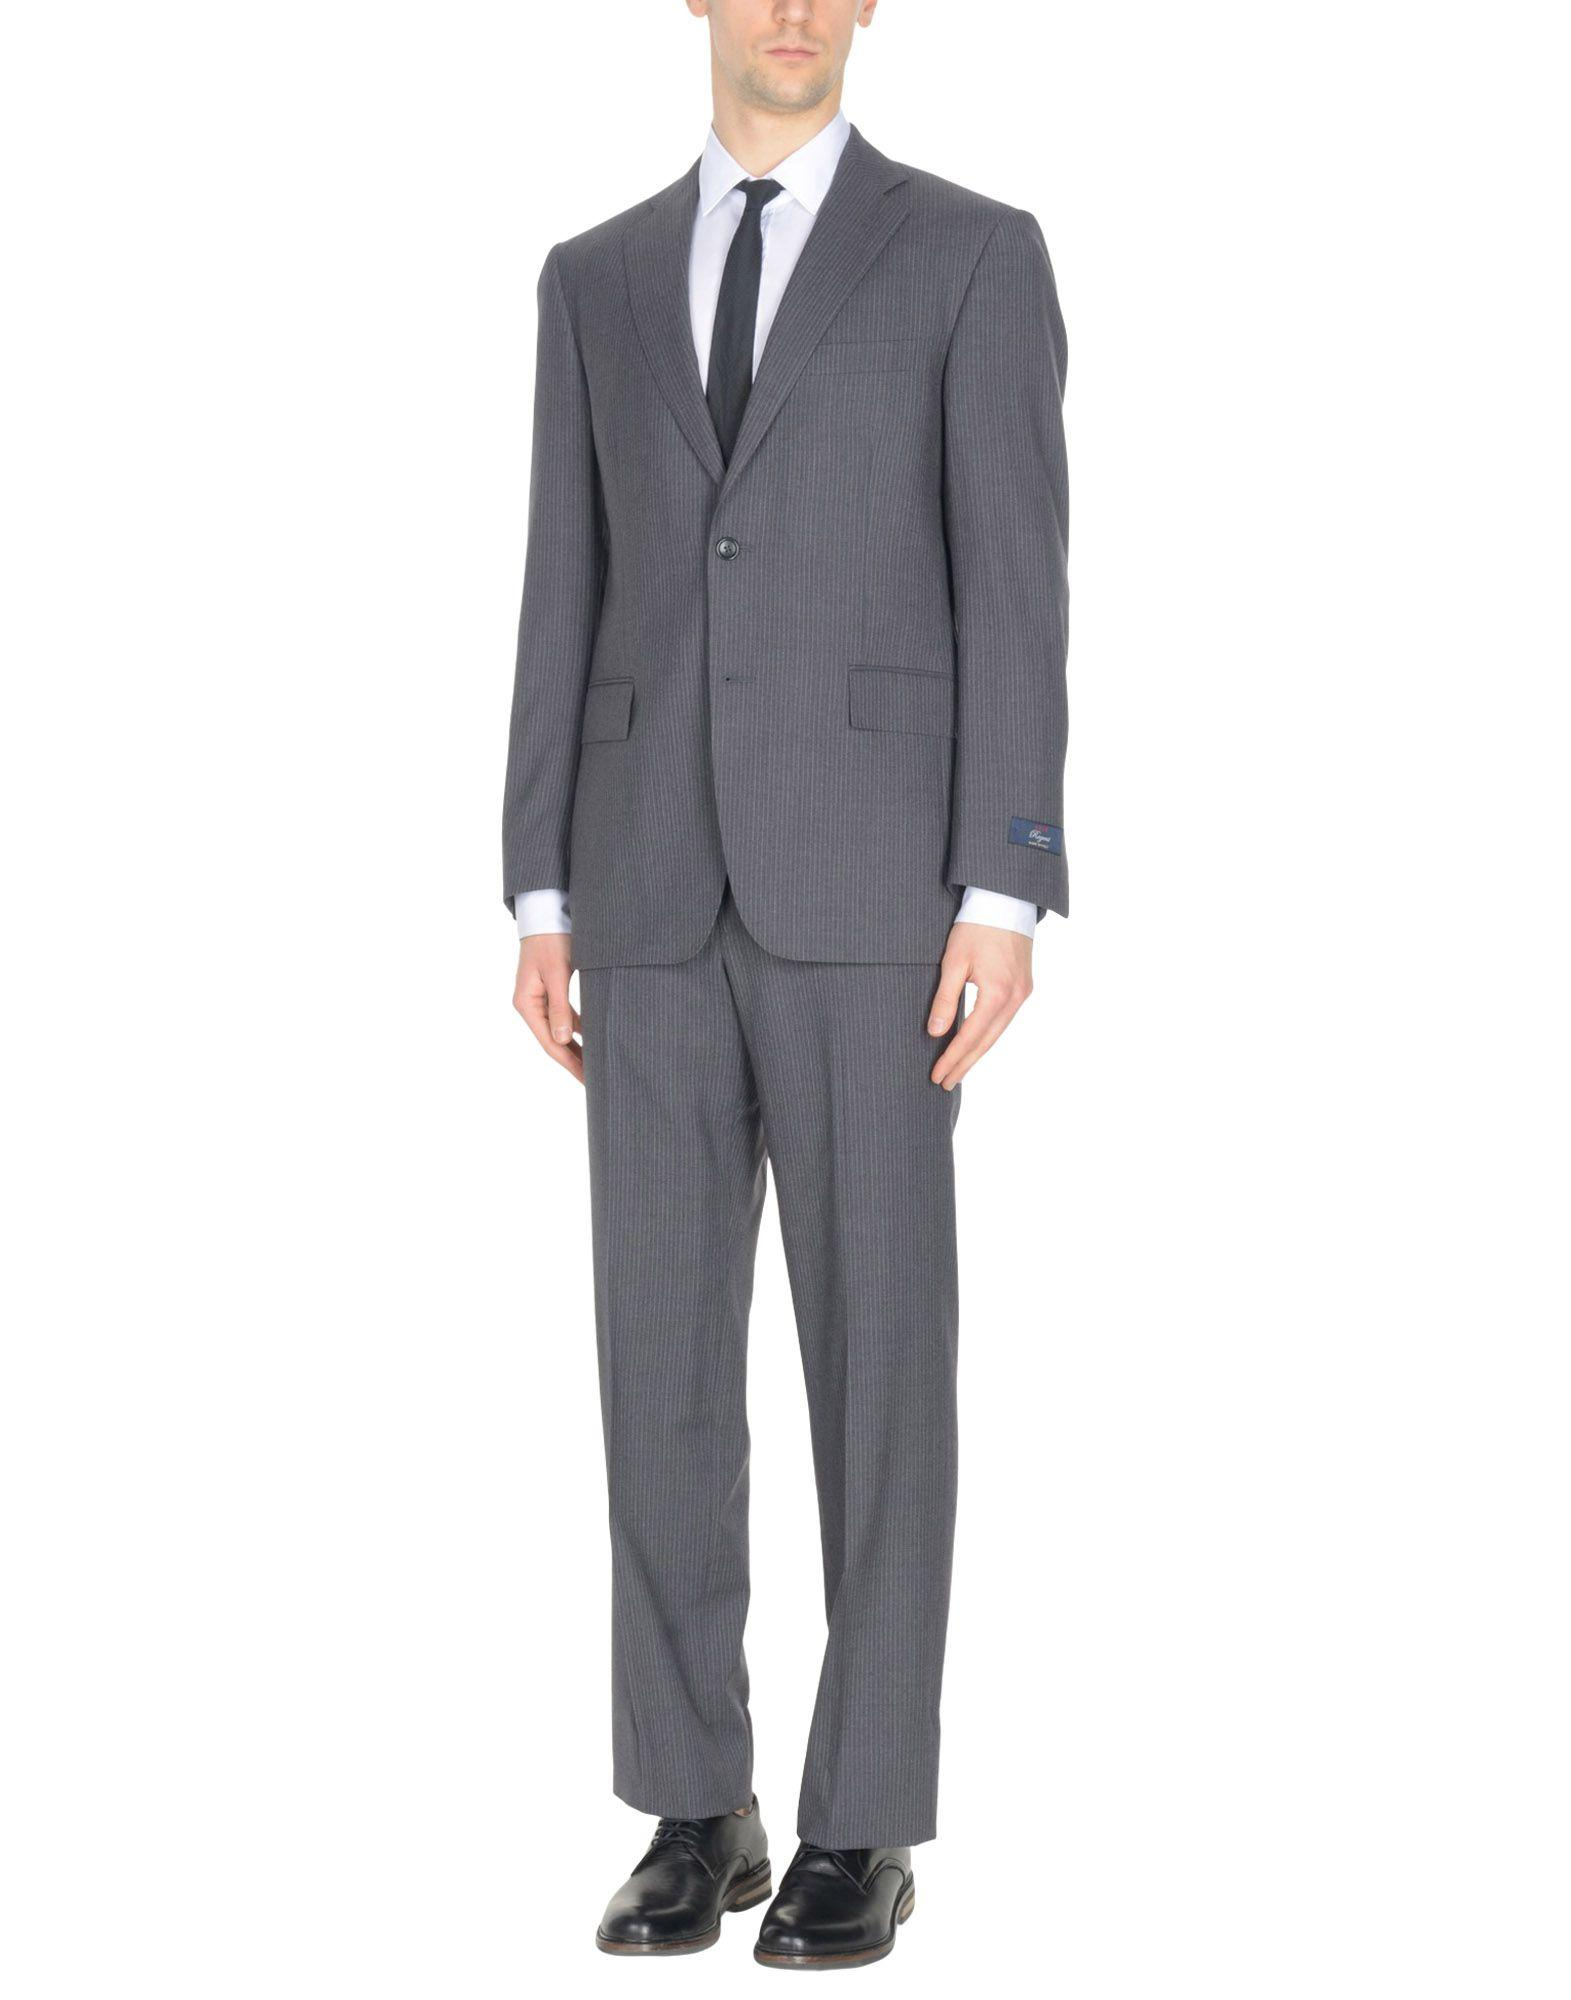 Brooks Brothers Suits In Steel Grey